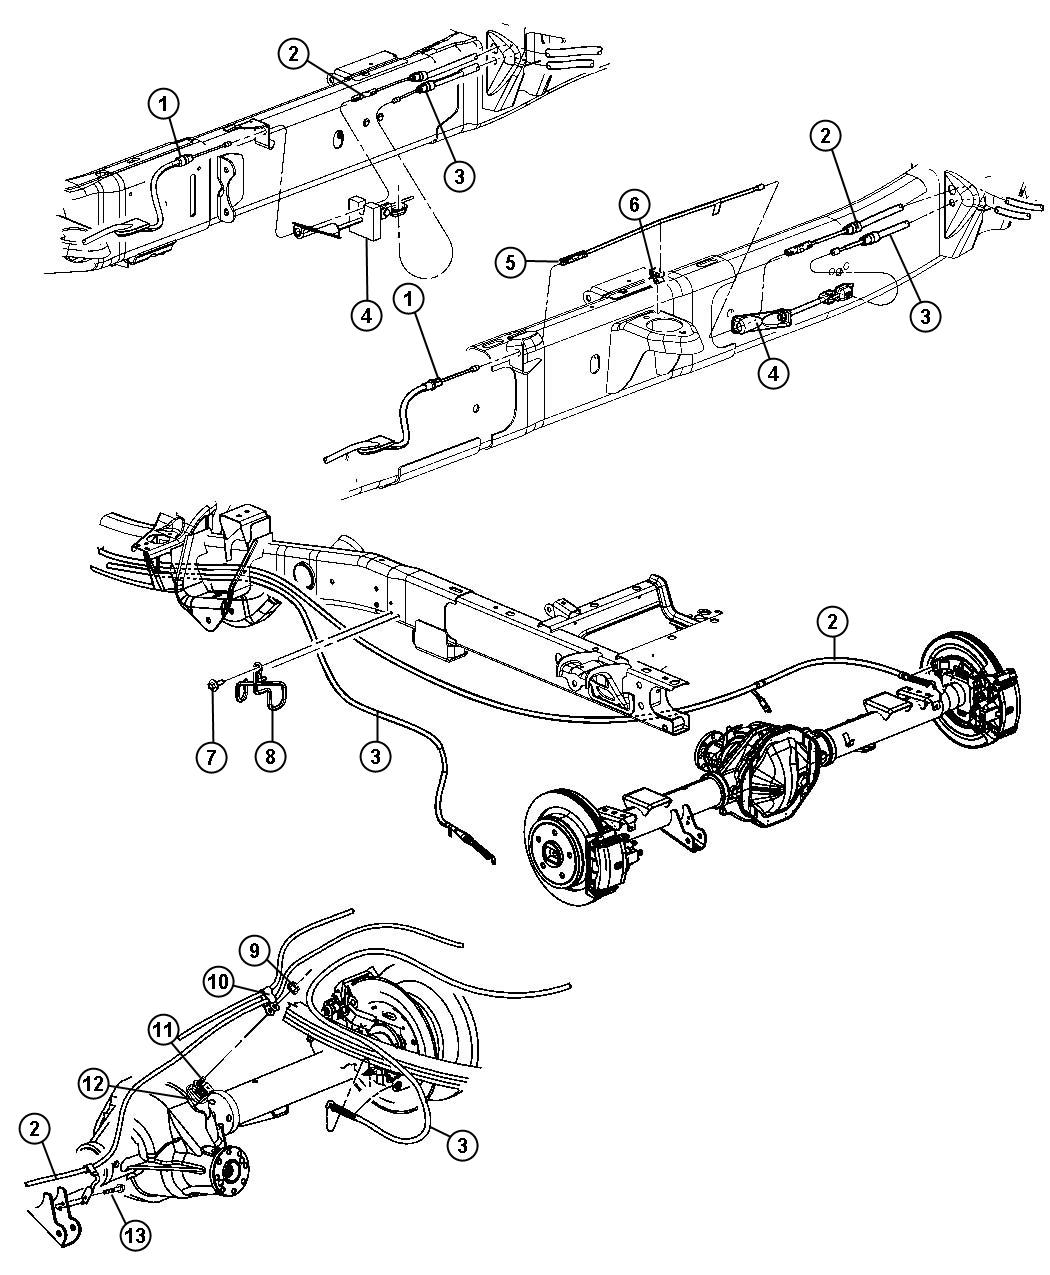 2013 Jeep Patriot Guide. Parking brake cable. Mounting